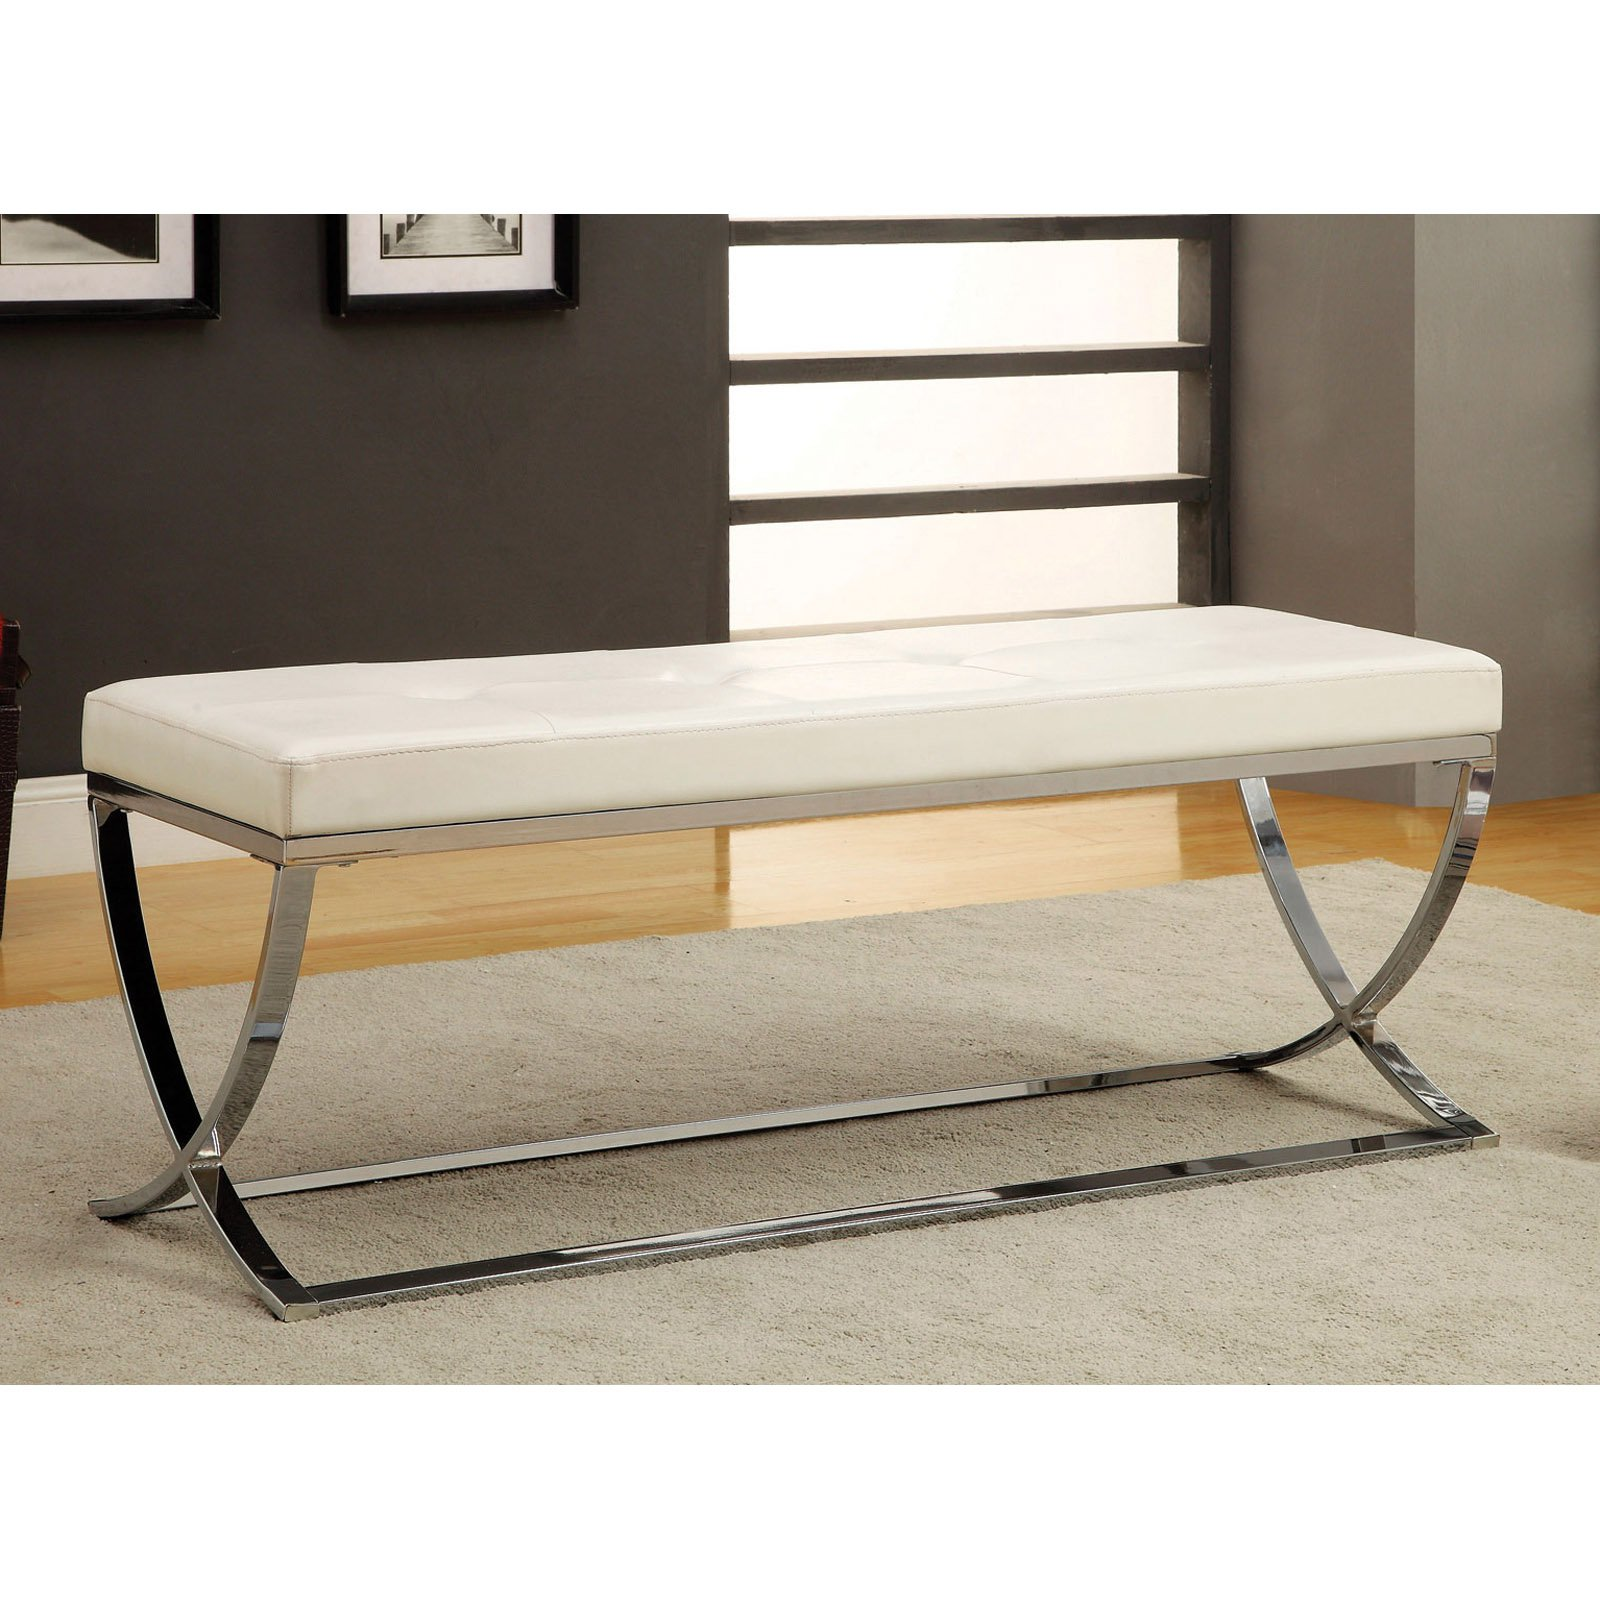 Coaster Furniture Calipatria Bedroom Bench